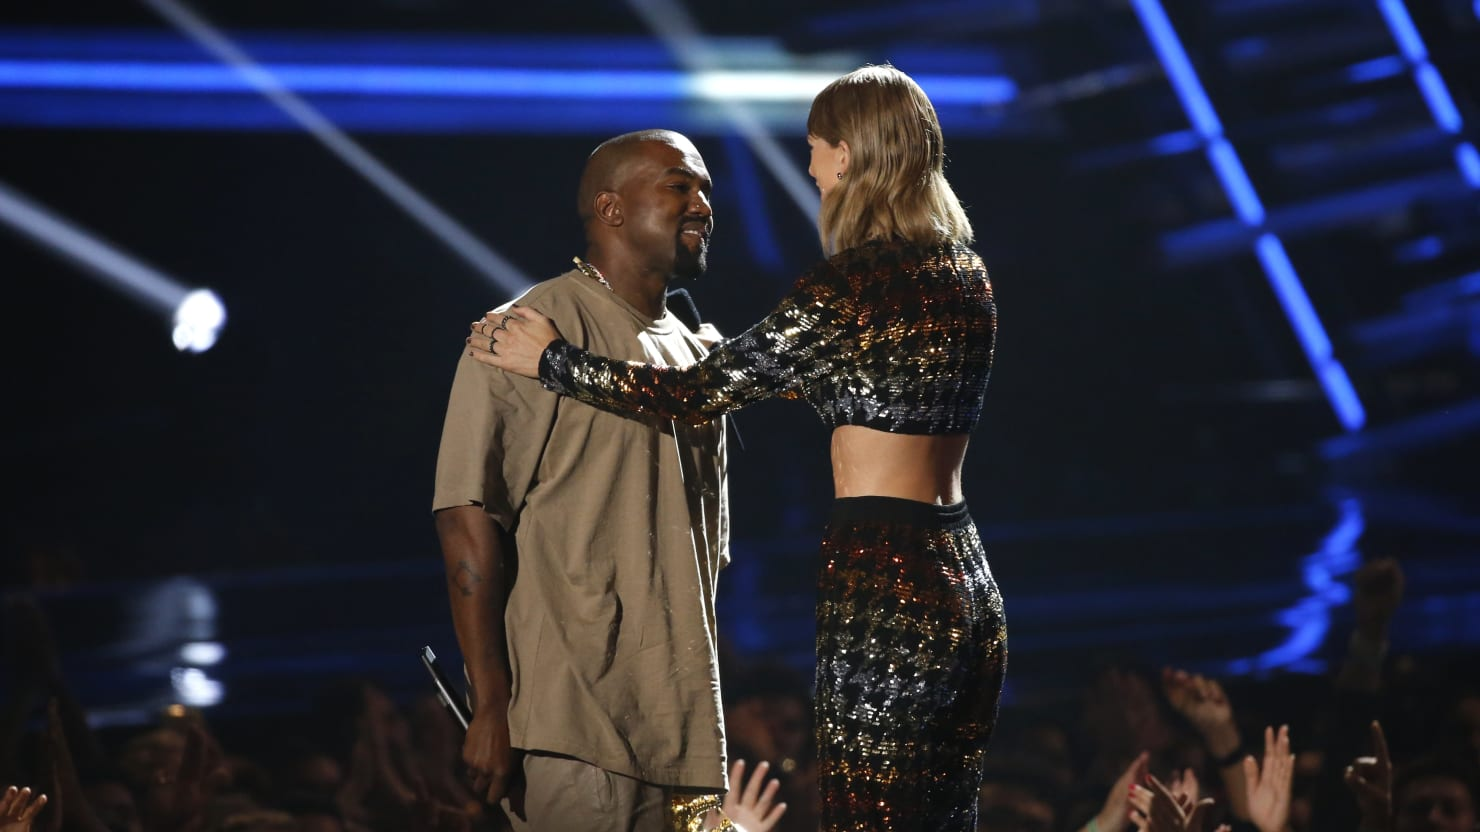 Kanye West and Taylor Swift Phone Conversation Leaked